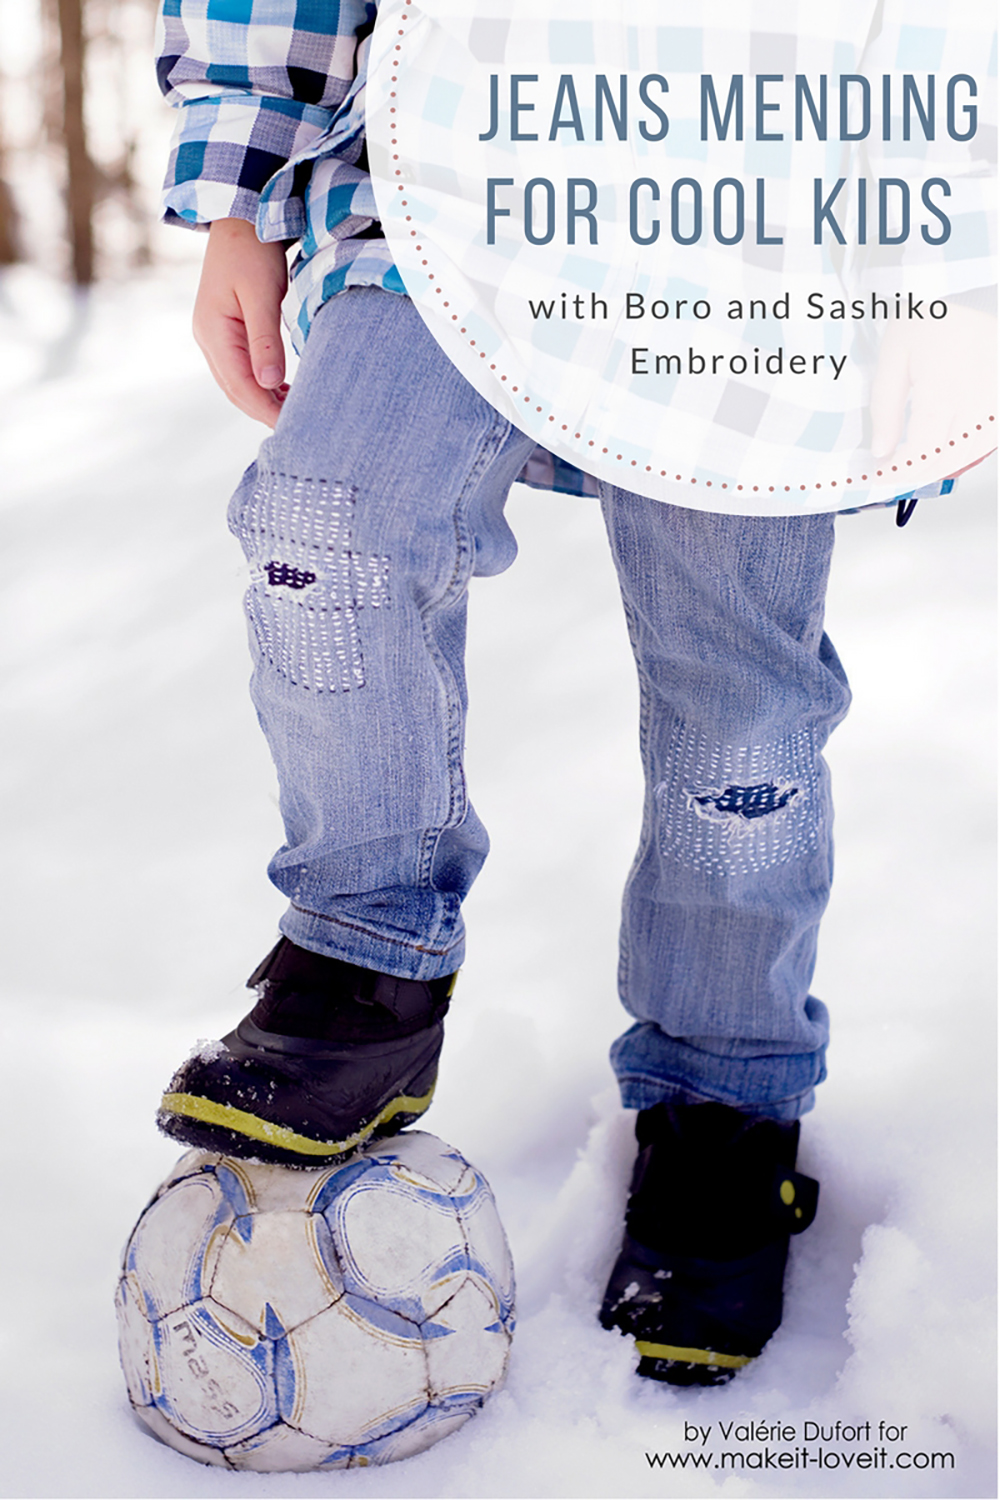 Mending Jeans For Cool Kids (...with Boro and Sashiko Embrodery) | via www.makeit-loveit.com